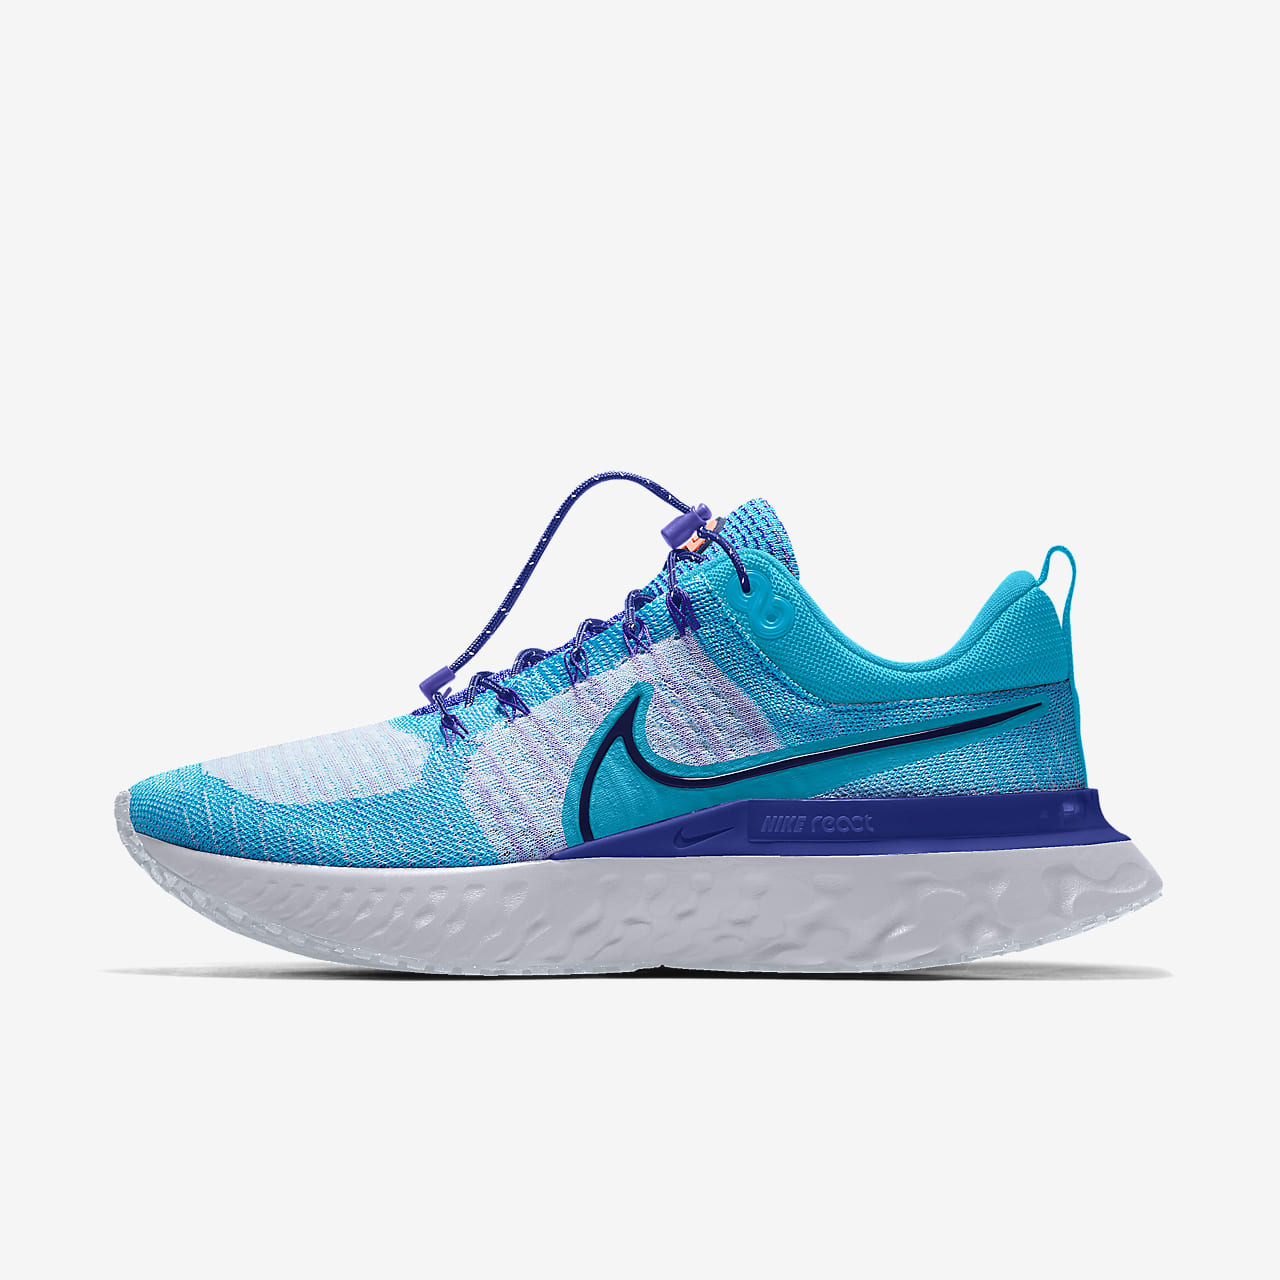 Sapatilhas de running personalizáveis Nike React Infinity Run Flyknit 2 By You